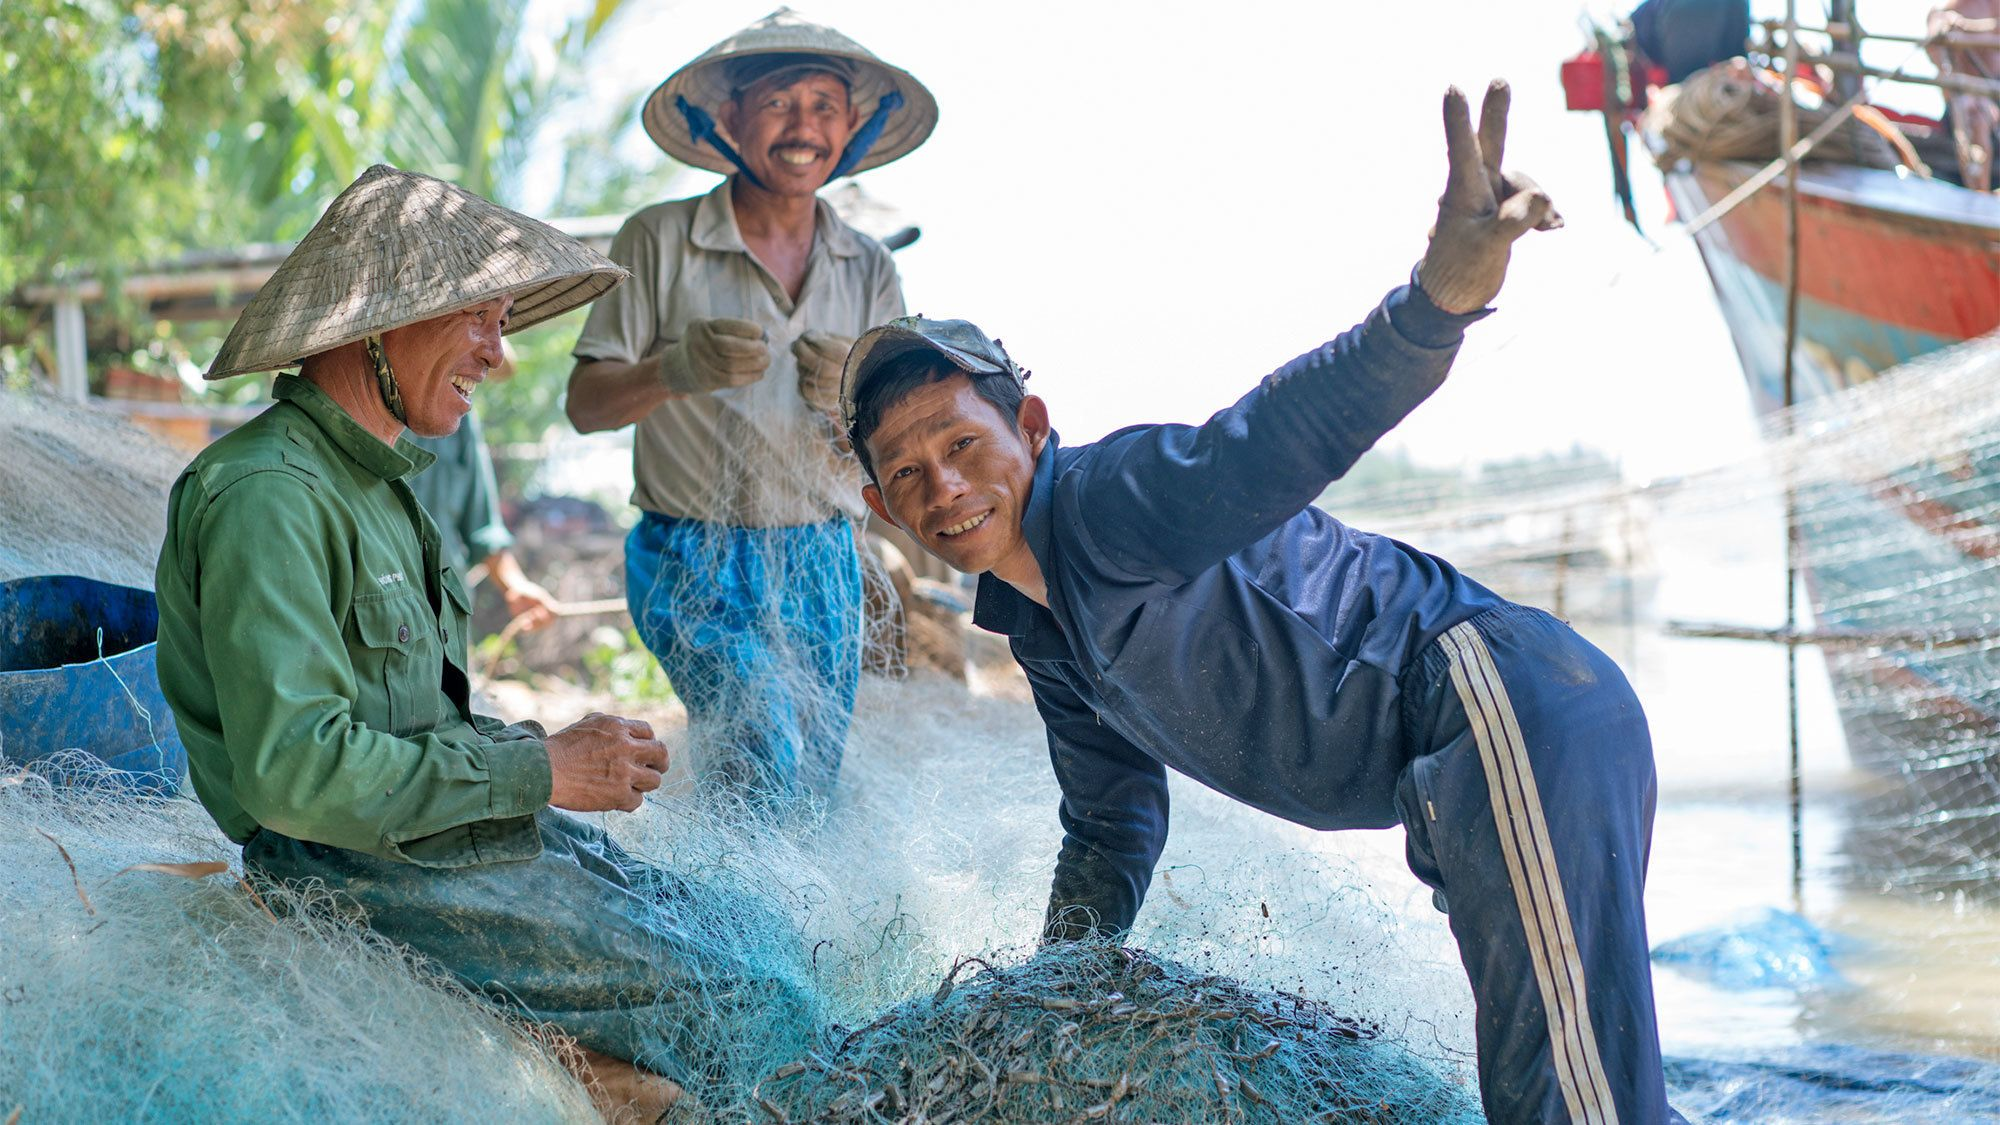 Locals in the countryside of Hoi An